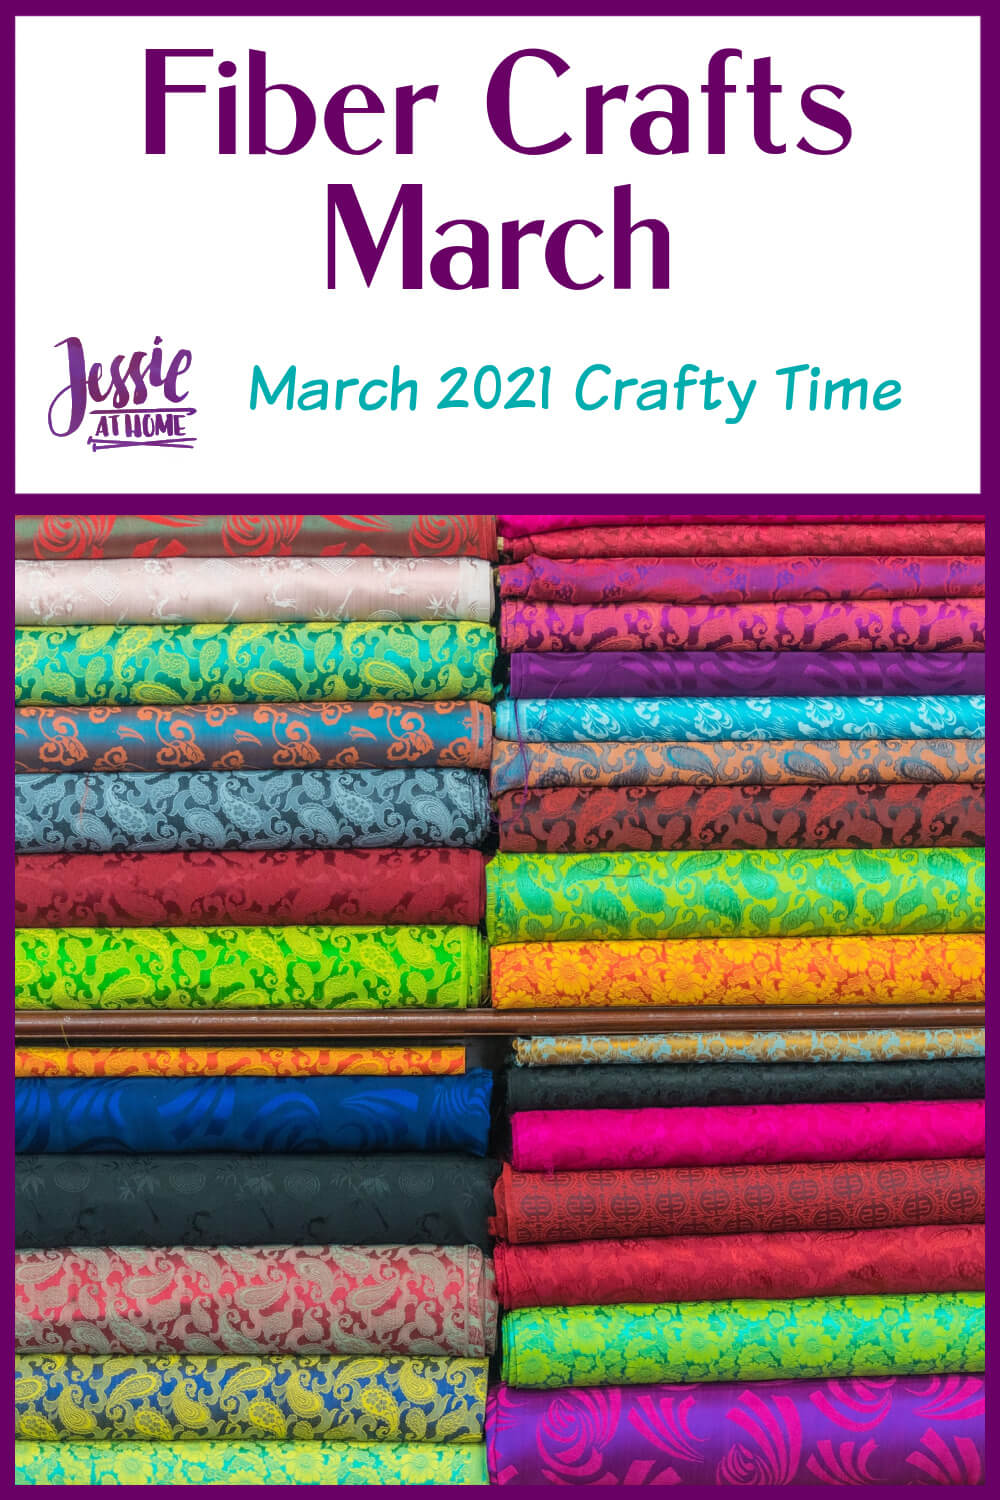 Fiber Crafts March - March 2021 Crafty Time with Jessie